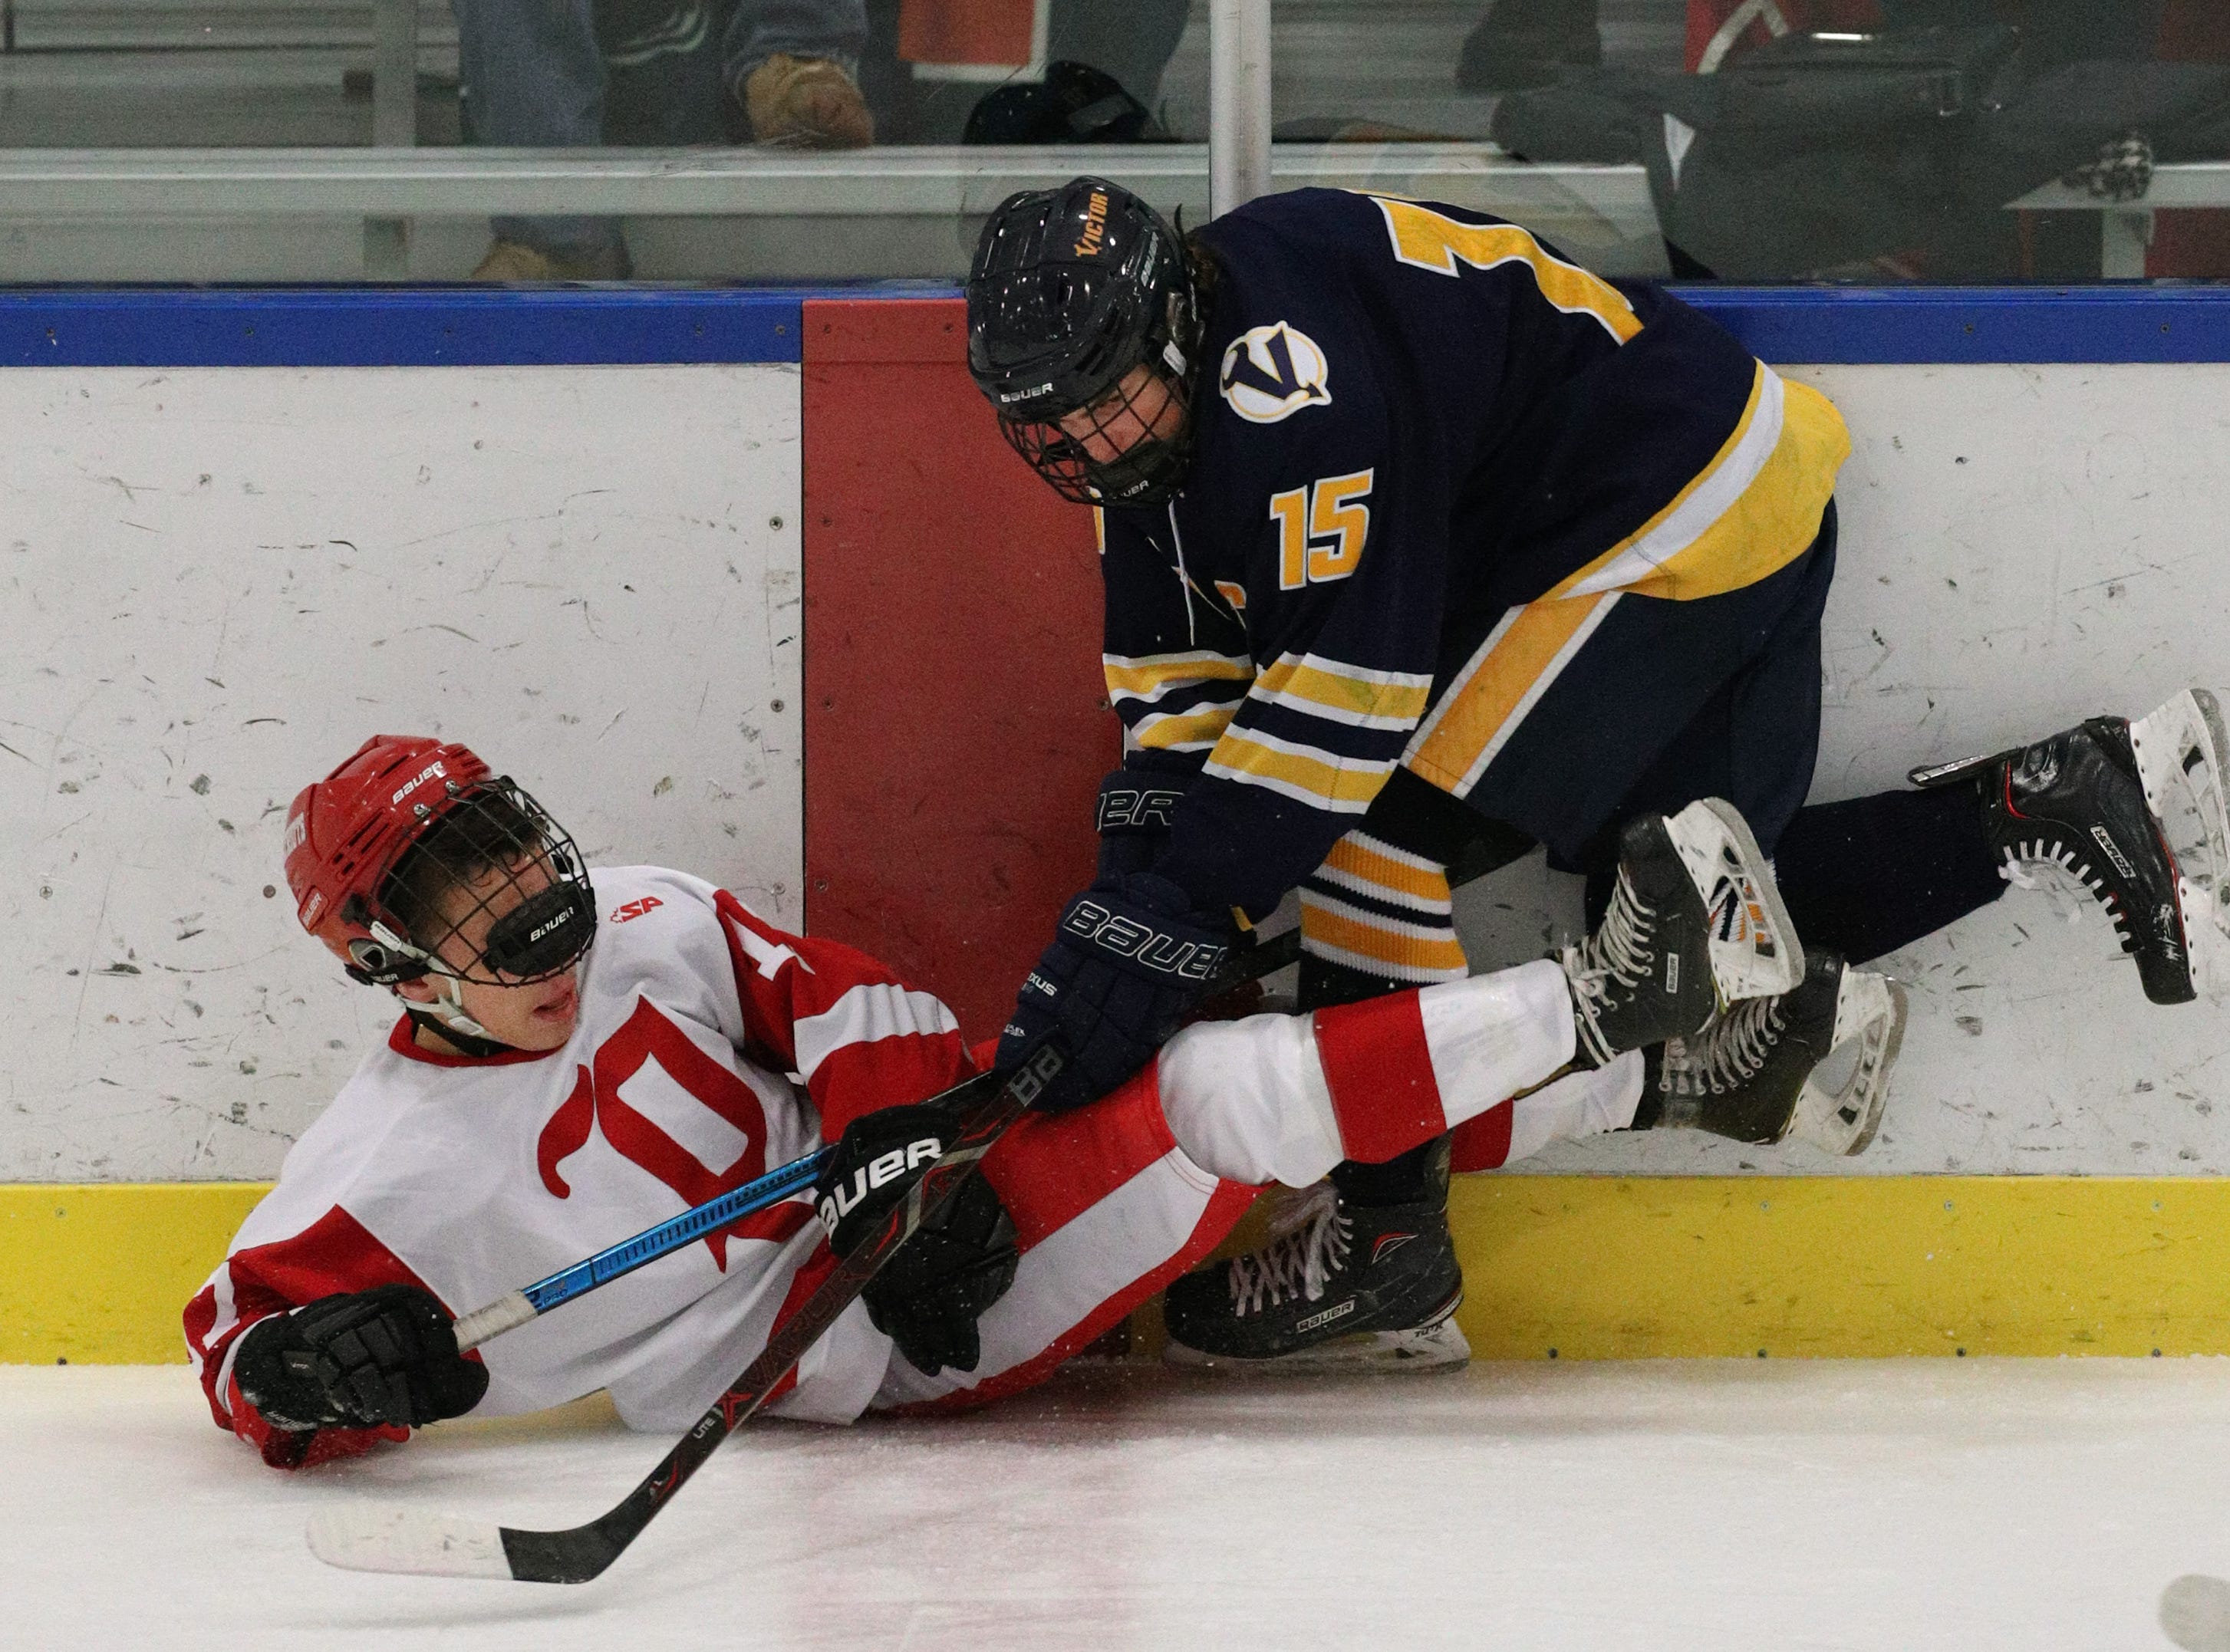 Penfield's Cody Stuewe  is checked to the ice by Victor's Lukas Miller (15).